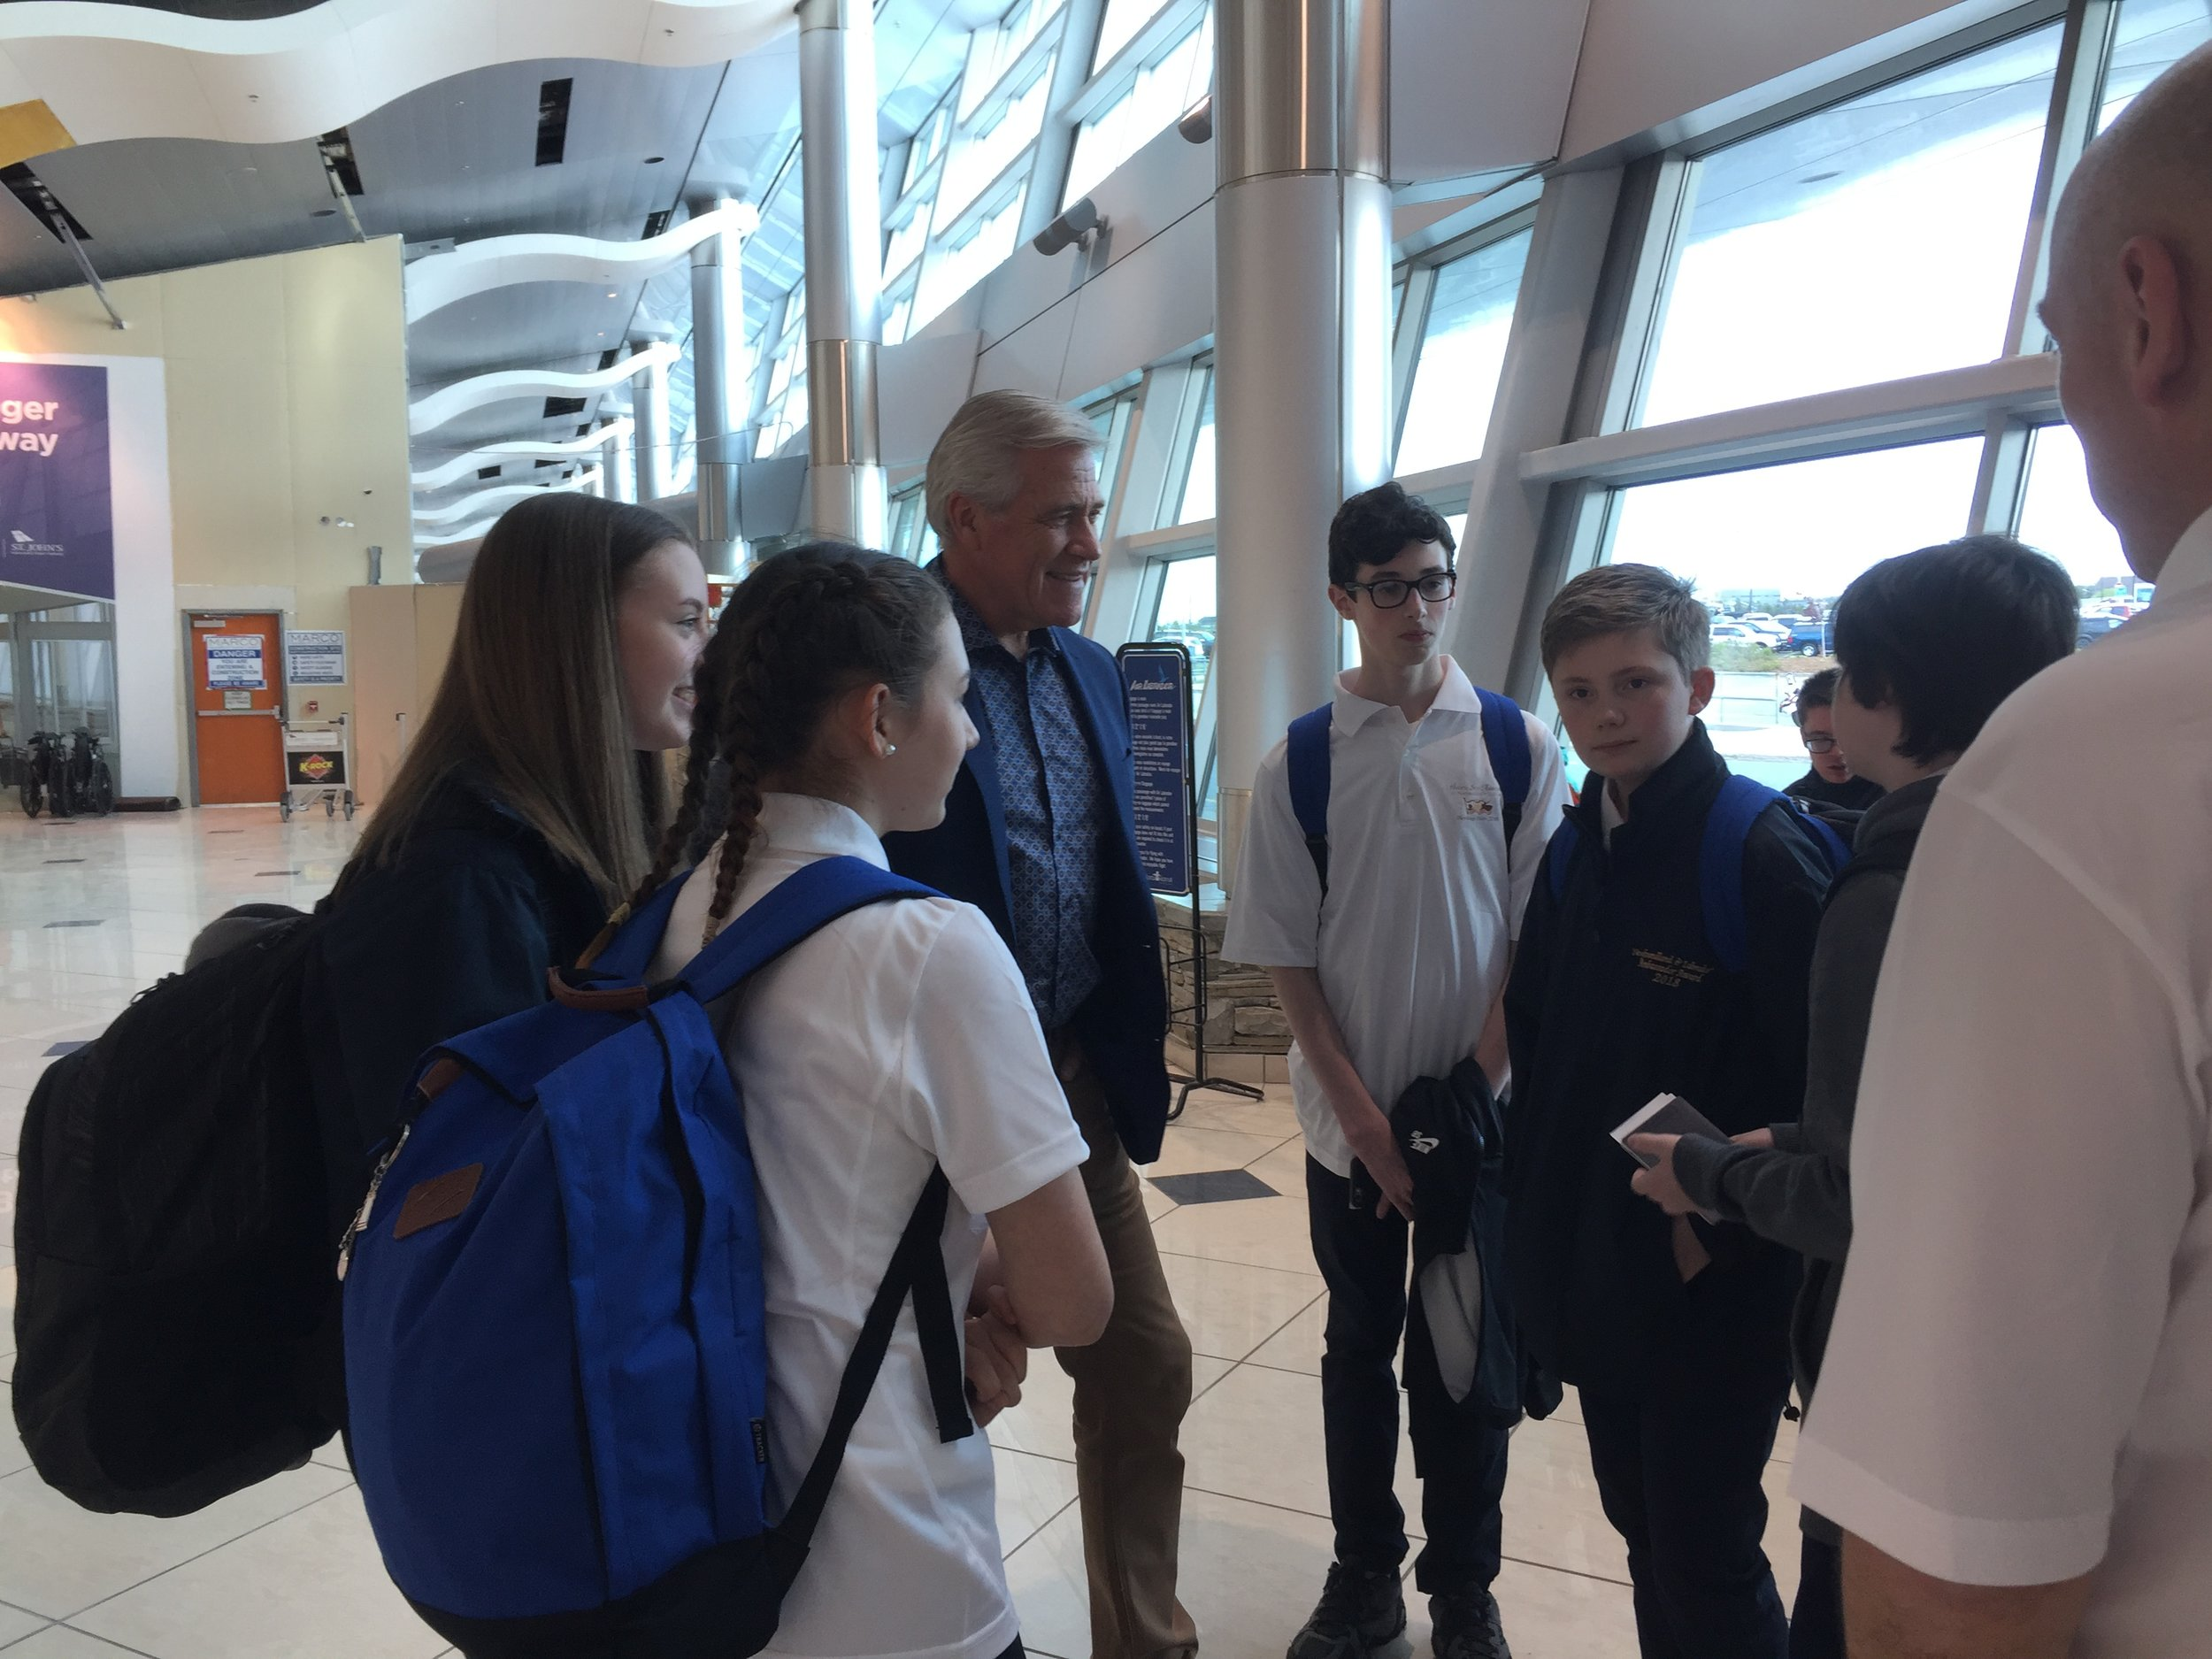 Premier Dwight Ball meeting with the ambassadors at St. John's internation airport before boarding the flight to Europe.